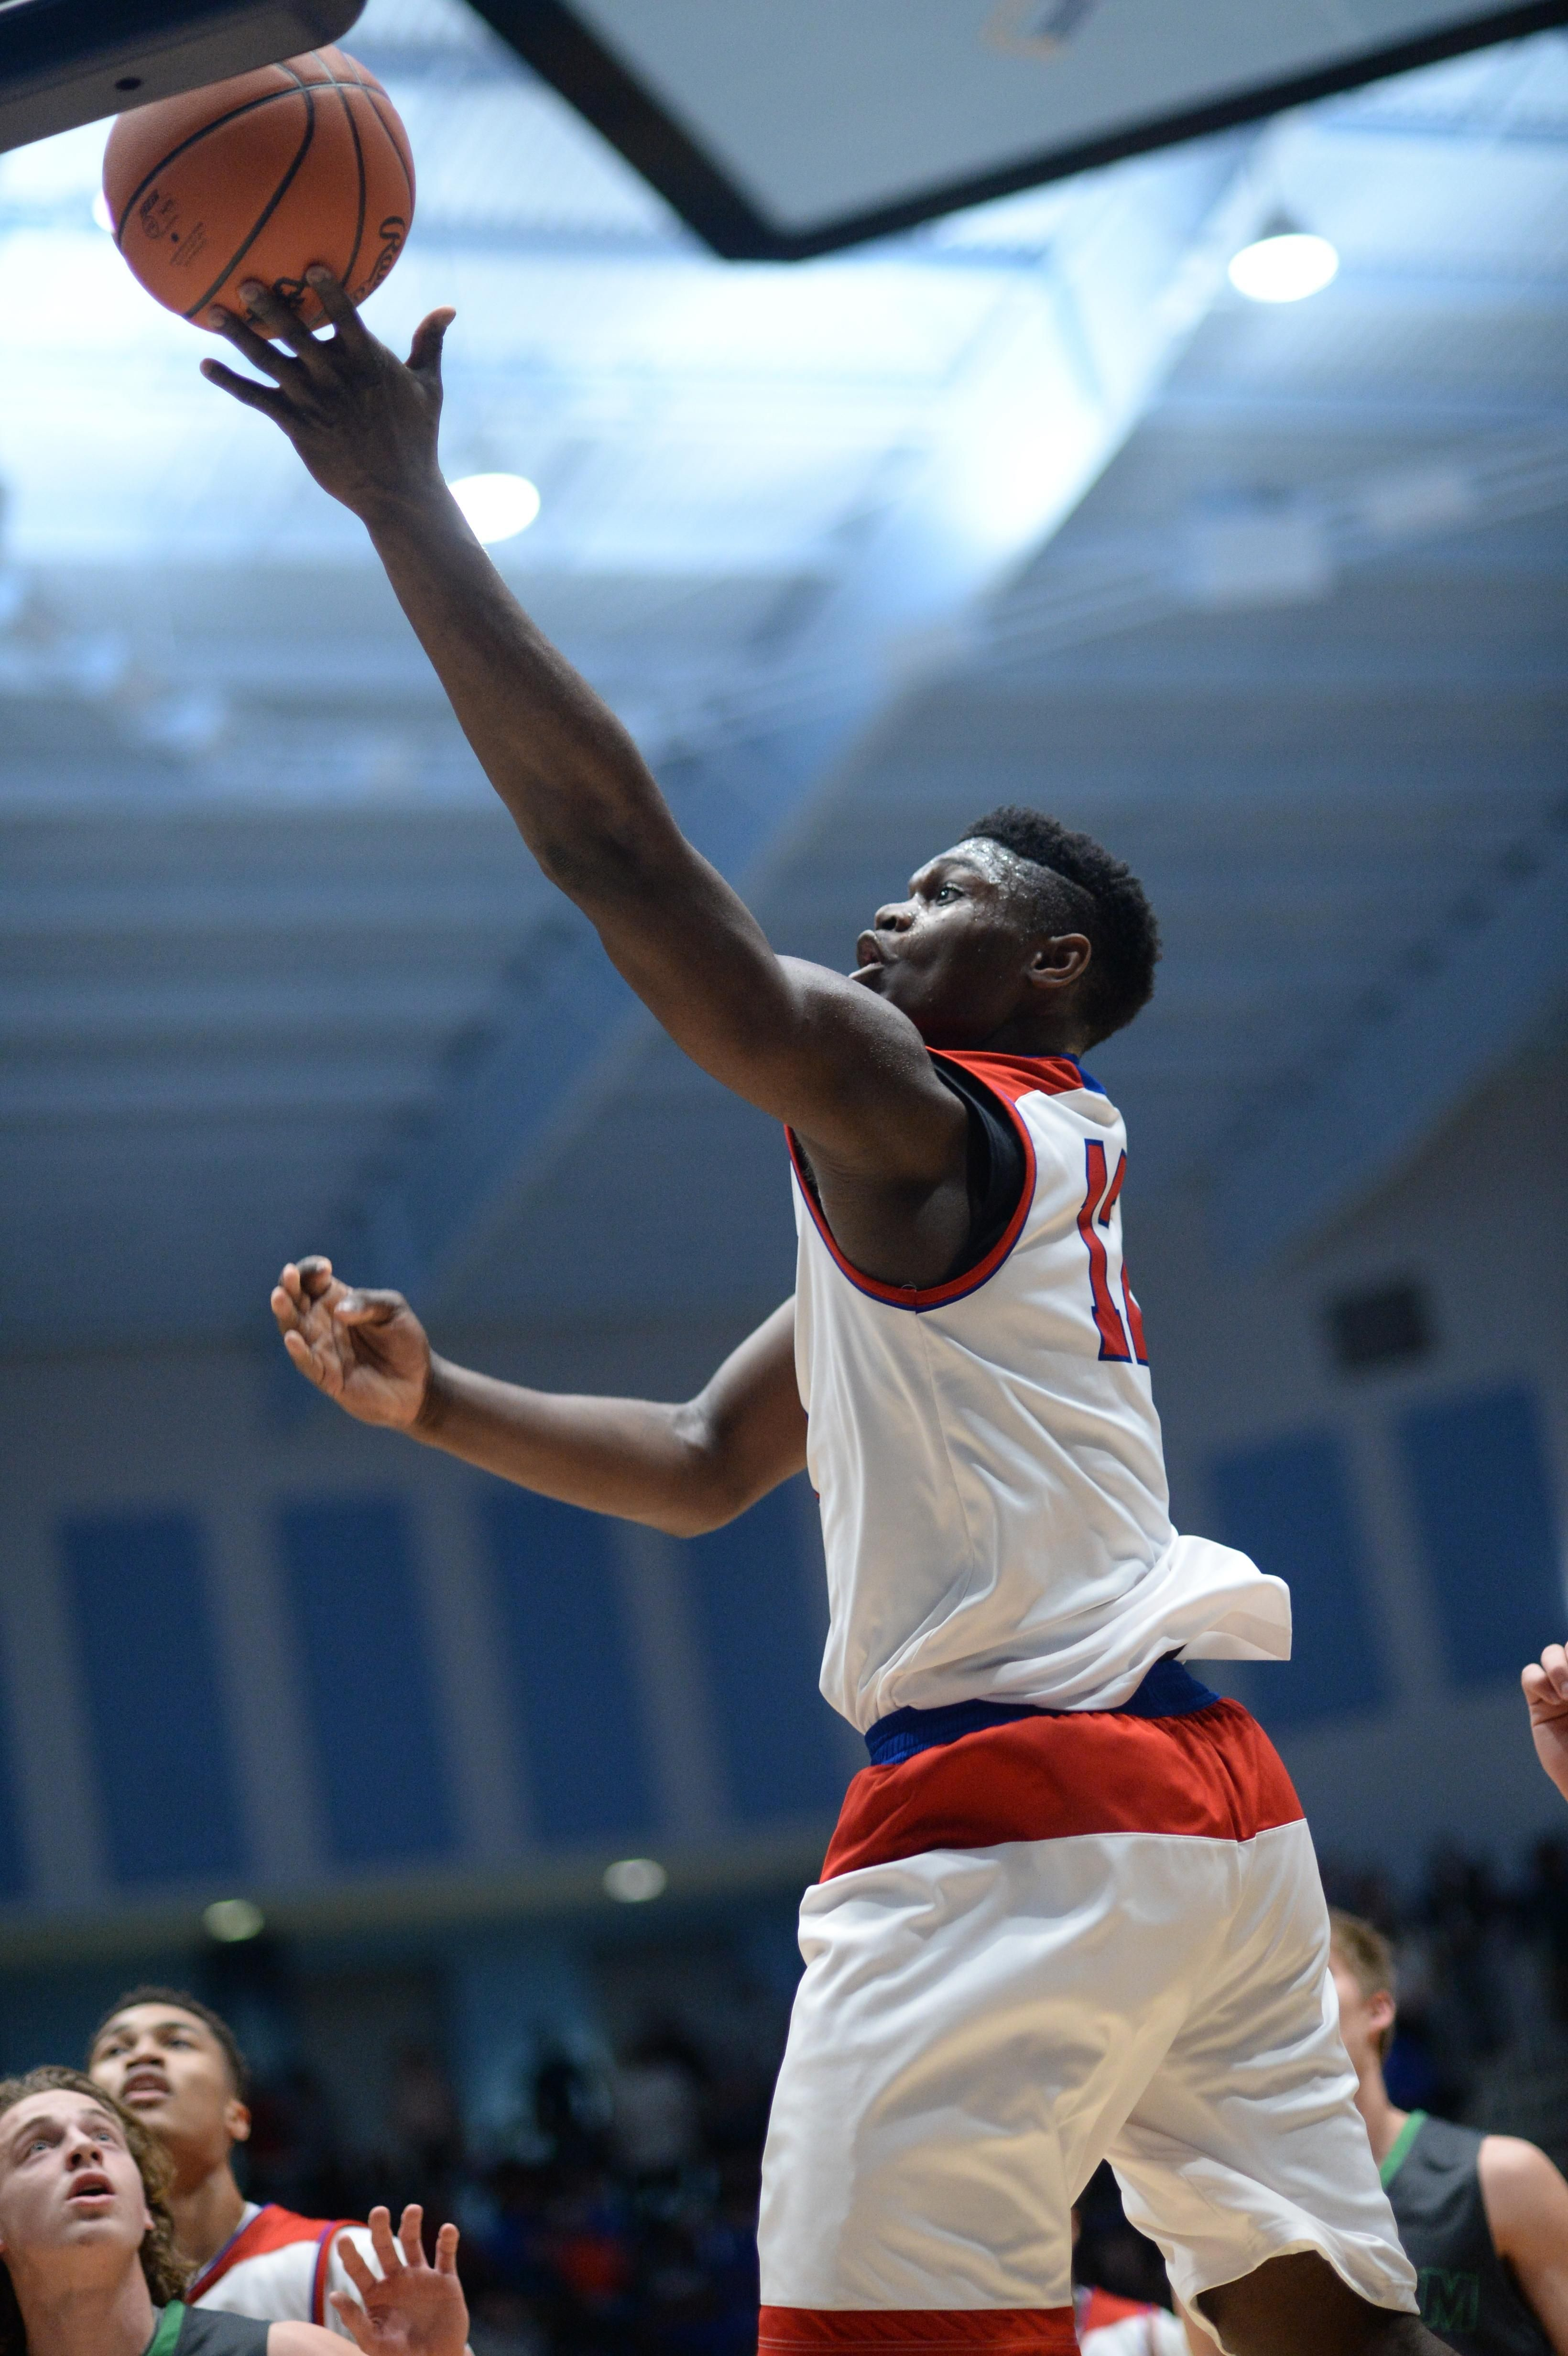 wholesale dealer 361a3 e4674 With popularity growing, Zion Williamson turns in show ...